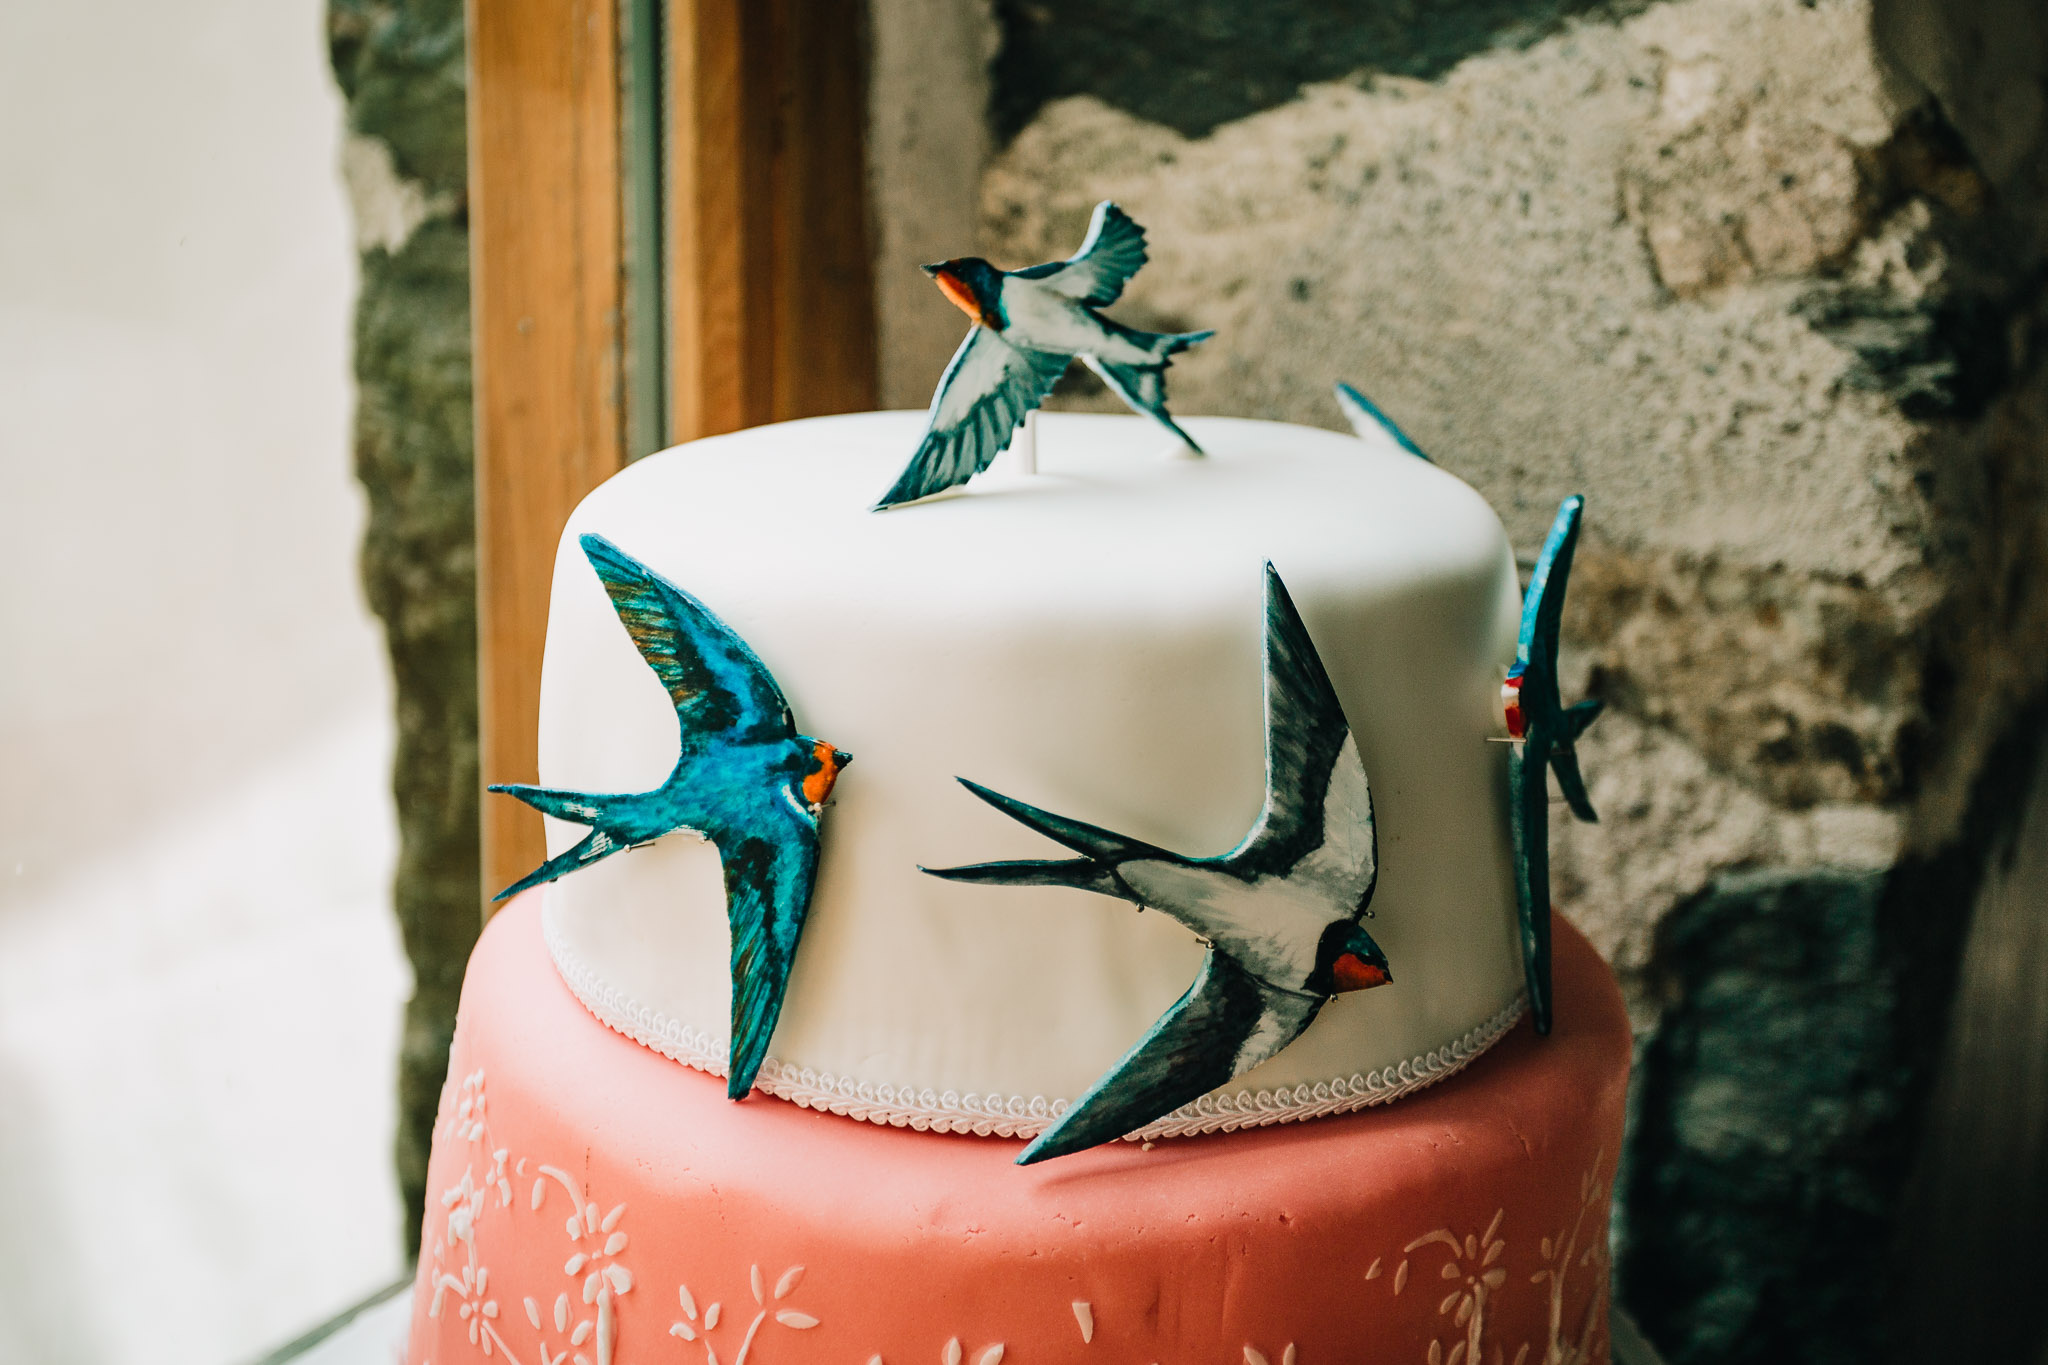 HANDMADE WEDDING CAKE WITH BIRDS AND WILDLIFE THEME